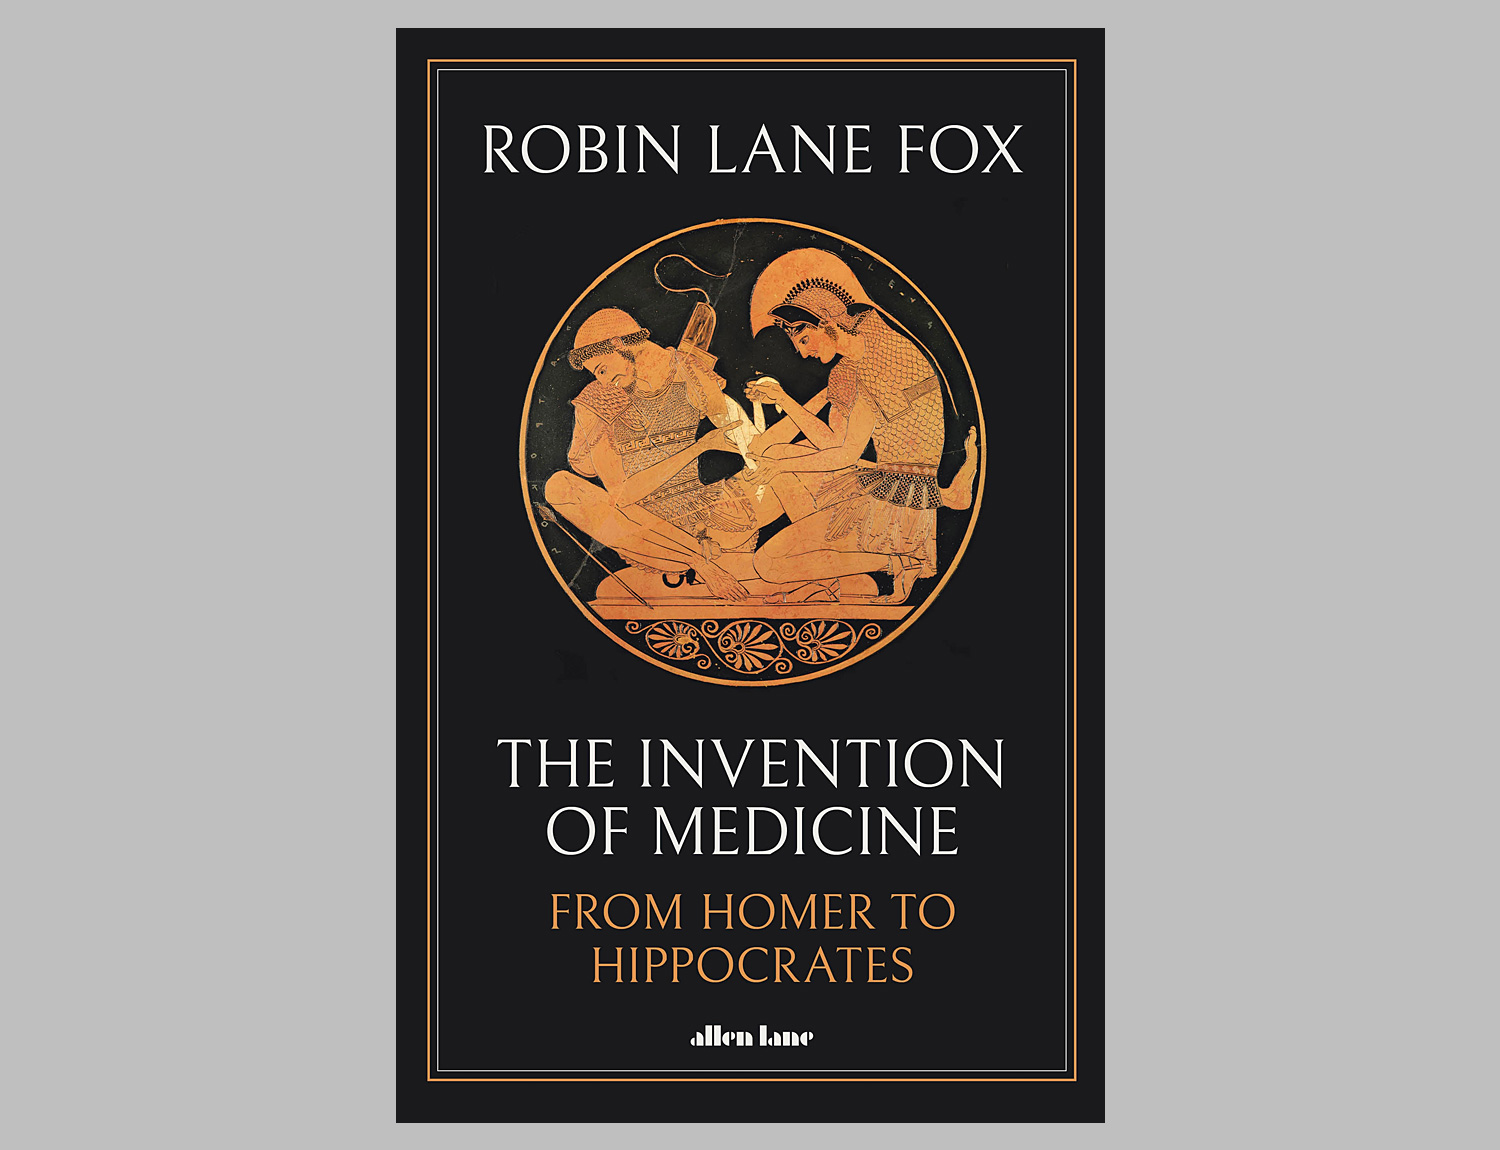 The Invention of Medicine: From Homer to Hippocrates at werd.com